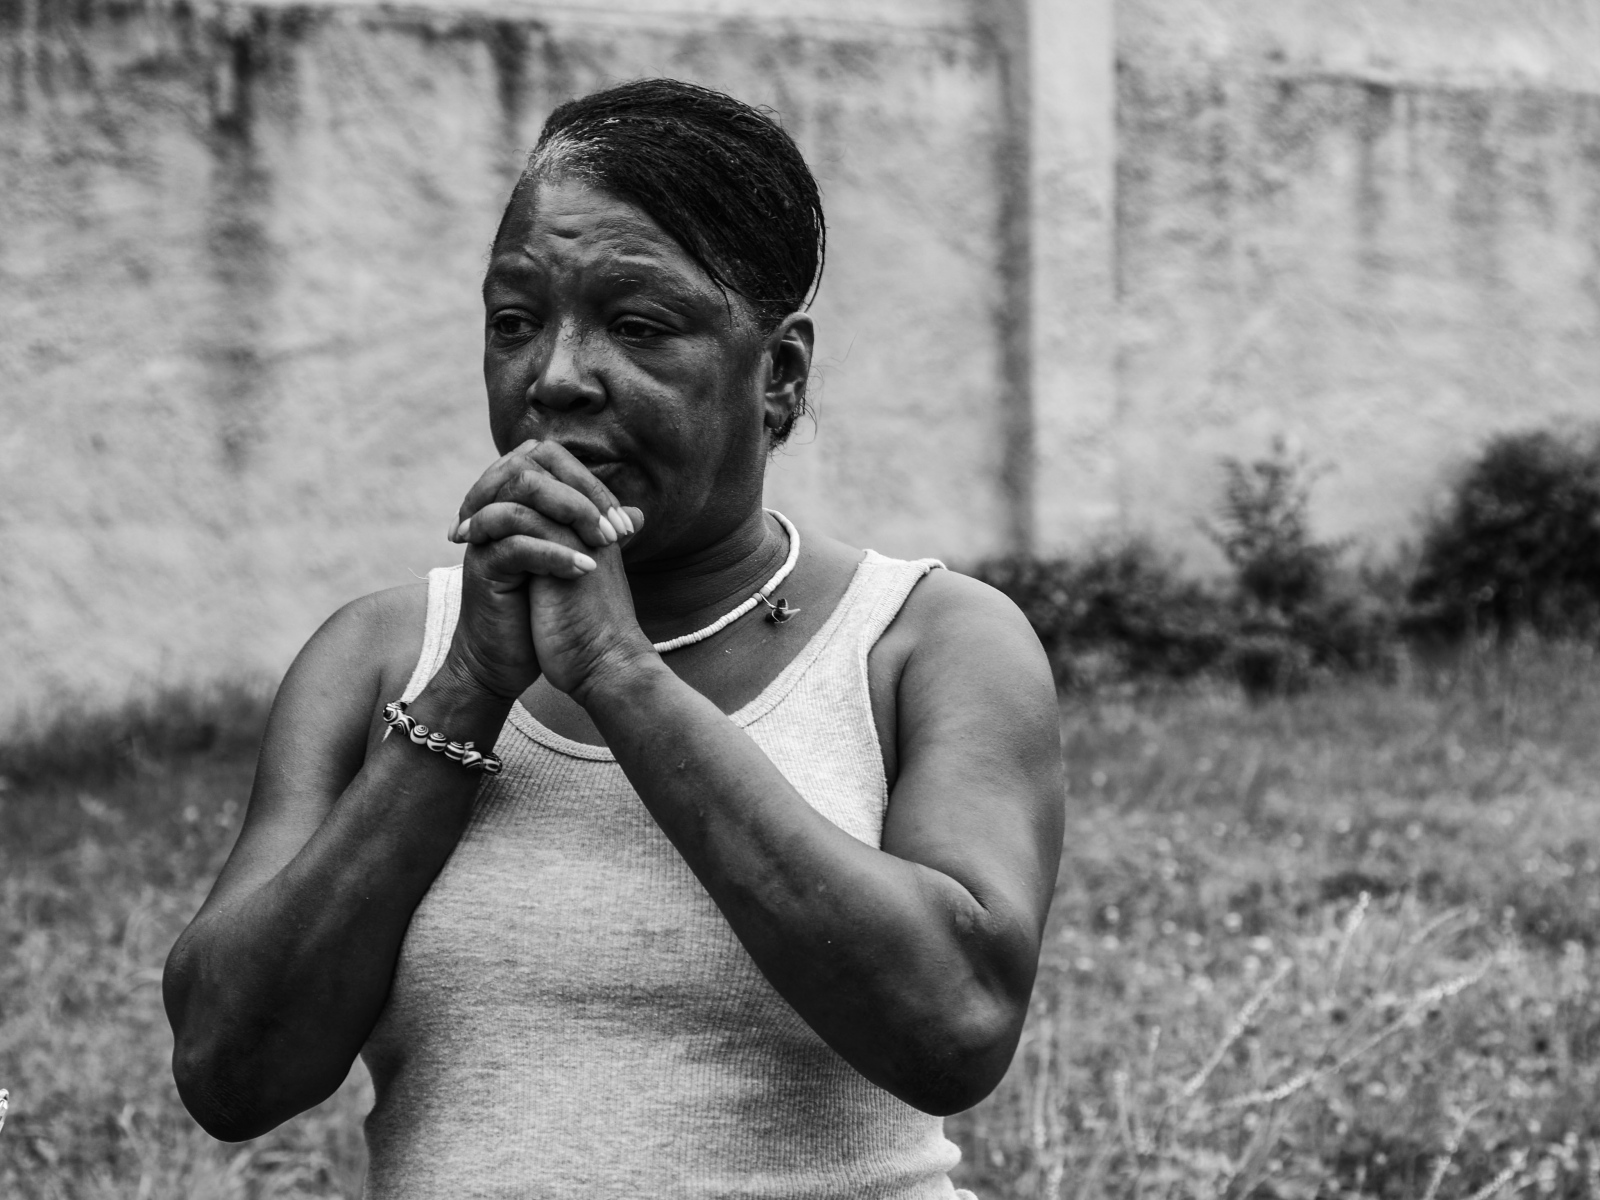 """I pray everyday for the violence to stop,"" says a neighbor following a triple shooting in the 600 block of S. Carrollton St. on July 9, 2013."